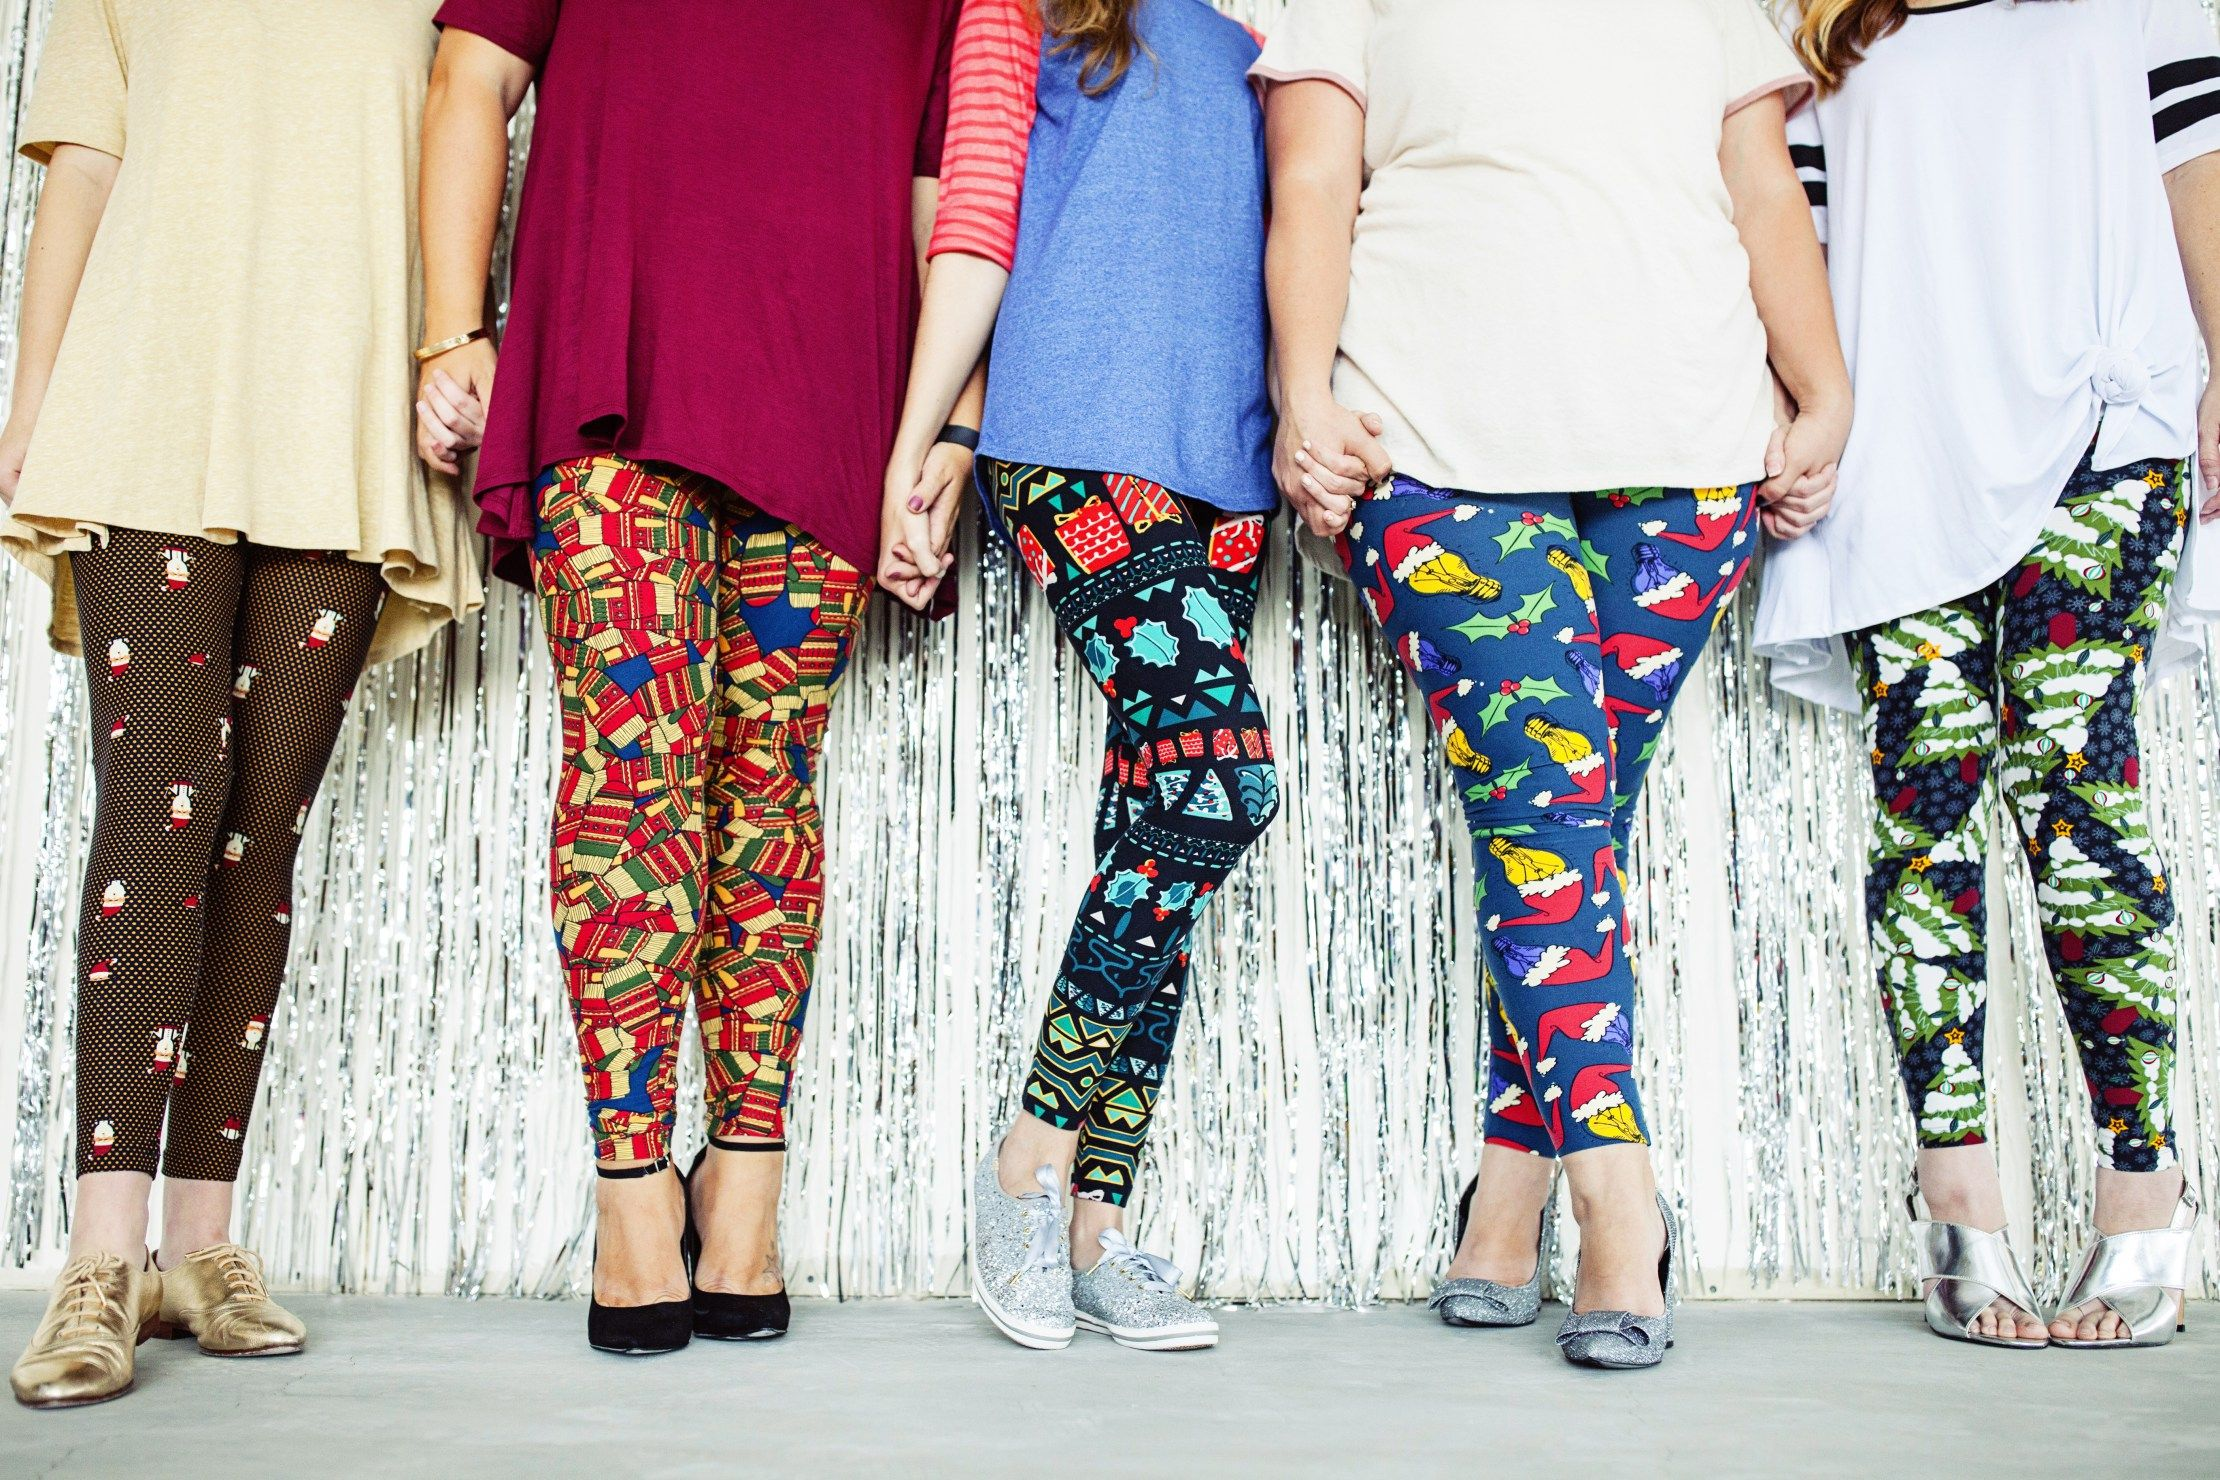 its that time of year again for lularoe holiday leggings 2016 lularoebutterbritches lularoechristmas2016